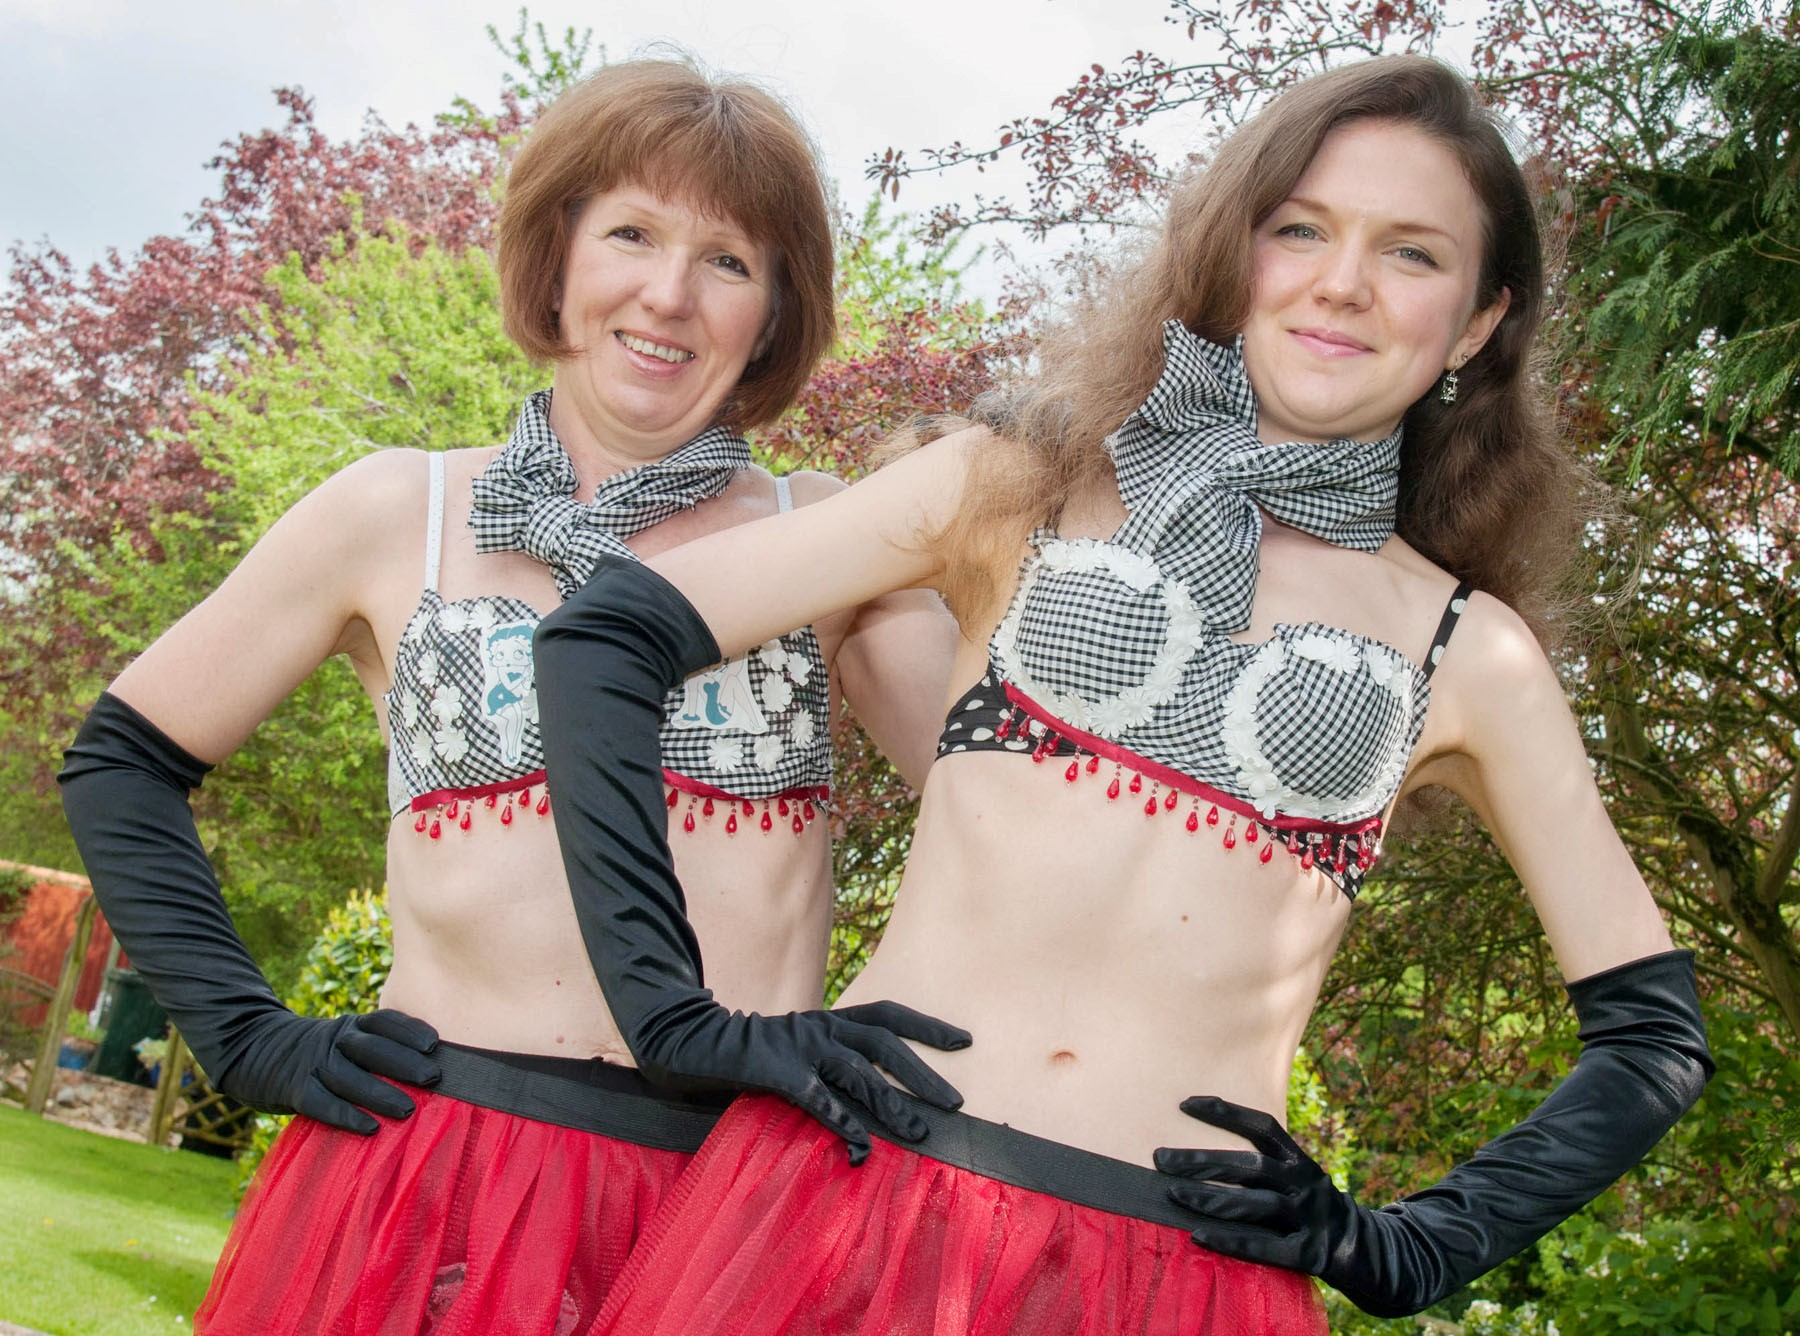 Three women to take on MoonWalk for breast cancer charity